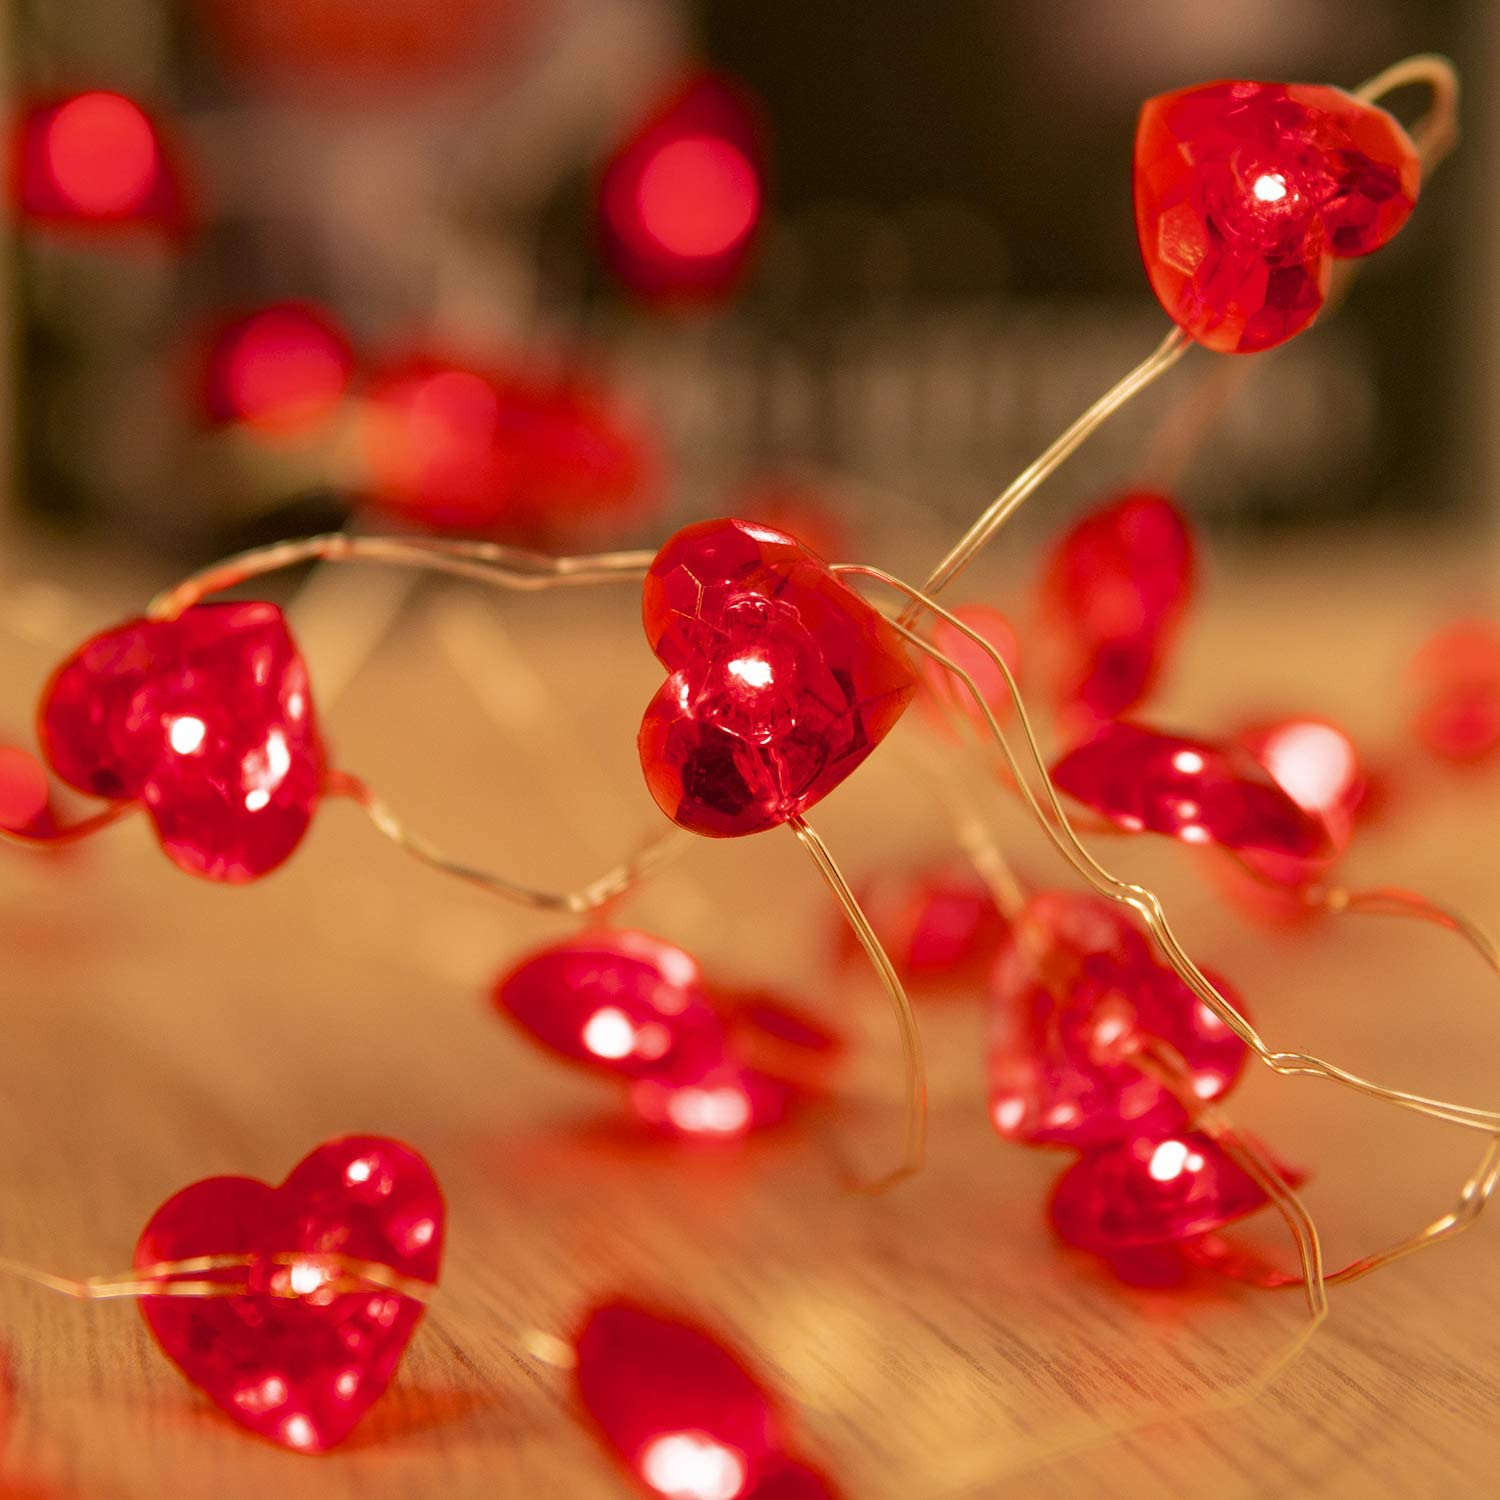 Valentines Day Decor String Lights Red Love Heart Shape Twinkle Fairy Lights 10FT 40LEDs Holiday Lighting Decoration with Remote Control and Battery Box for DIY Wedding Indoor Outdoor Party